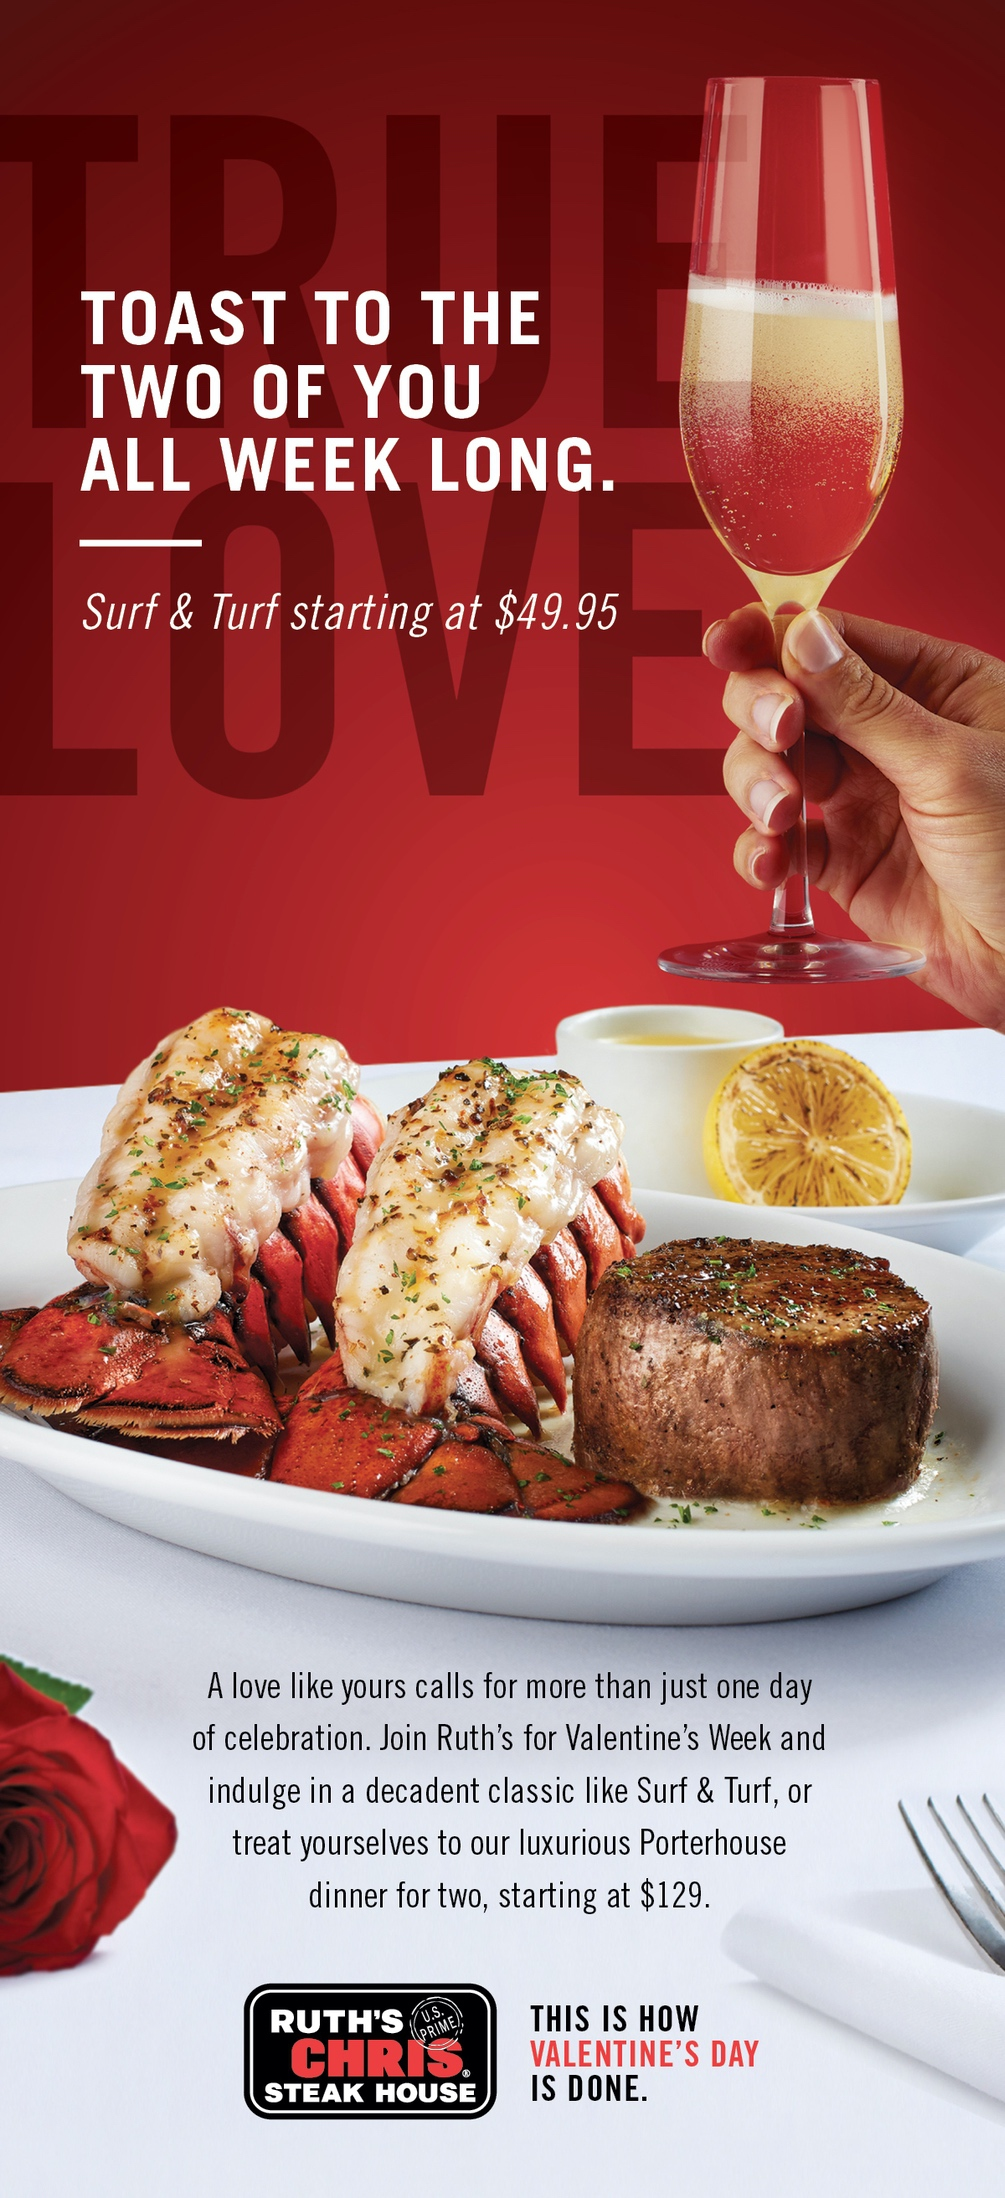 AaronVan_food_photography_ruths_chris_steak_lobster_tearsheet